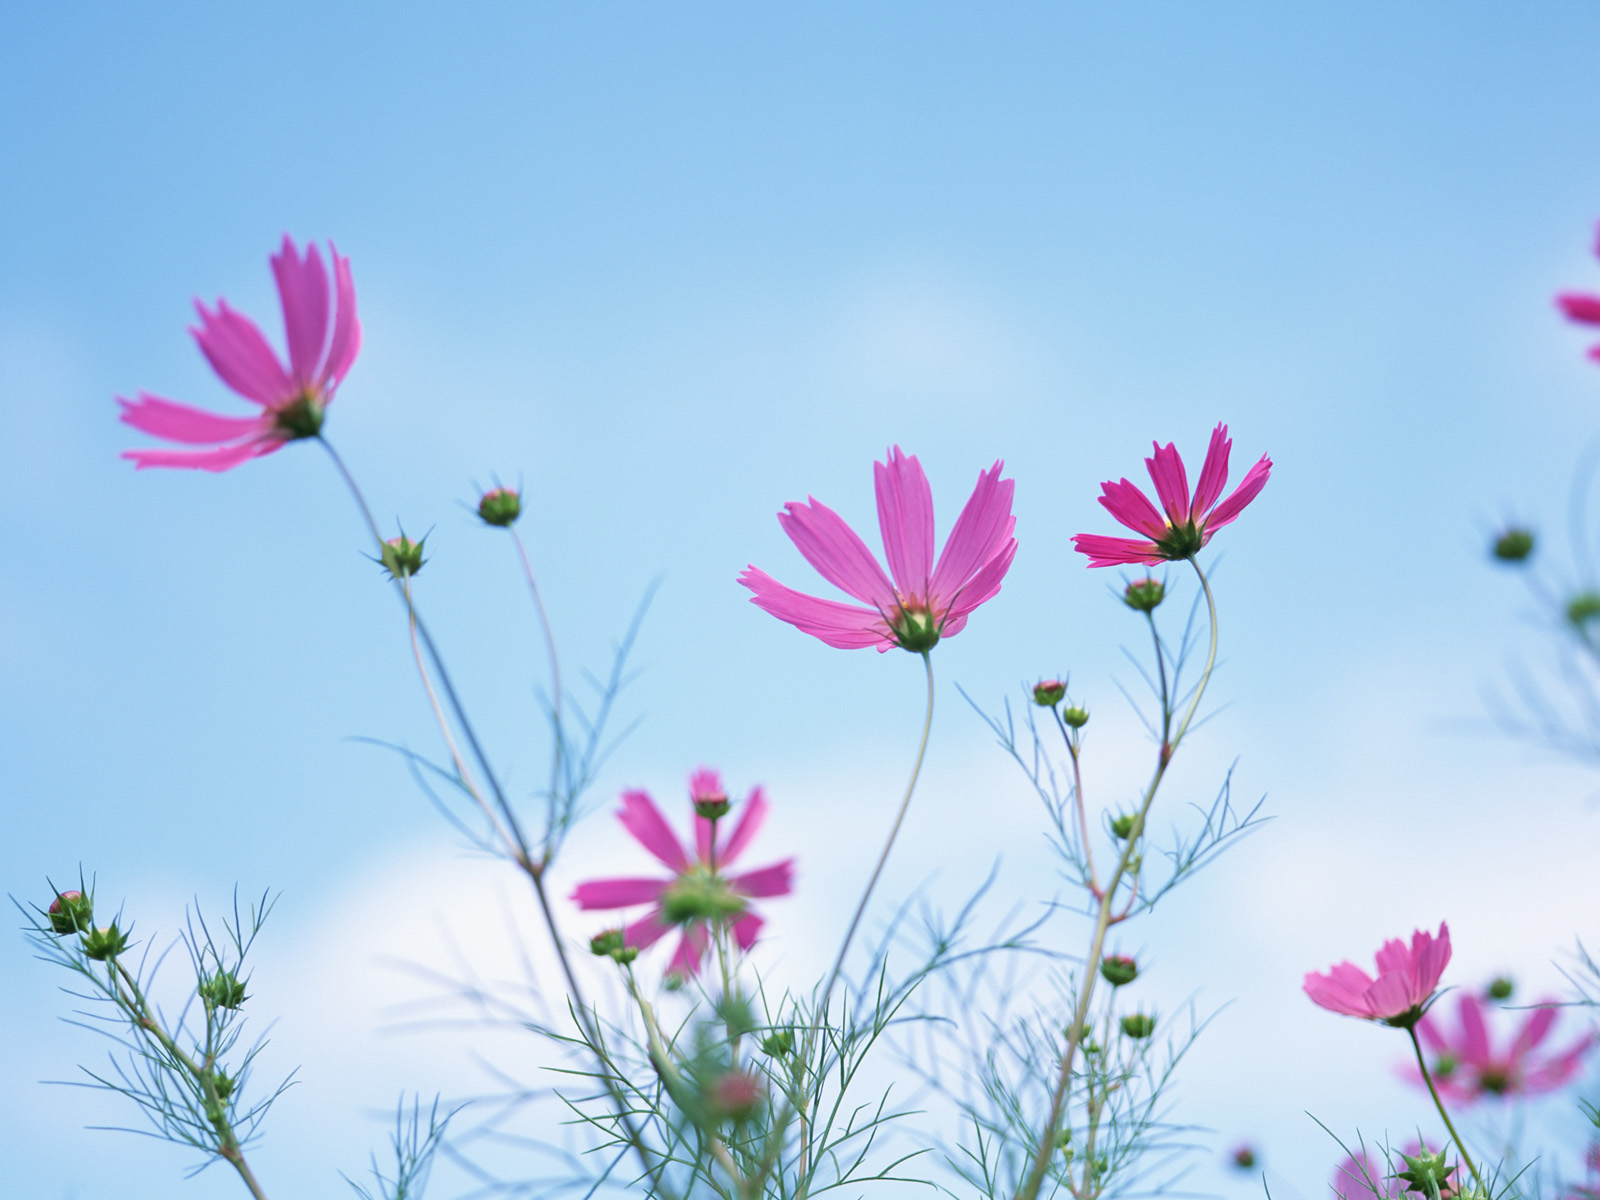 click to free download the wallpaper--Flower and Nature, Pink Blooming Flowers Under the Blue Sky, Amazing Scene 1600X1200 free wallpaper download